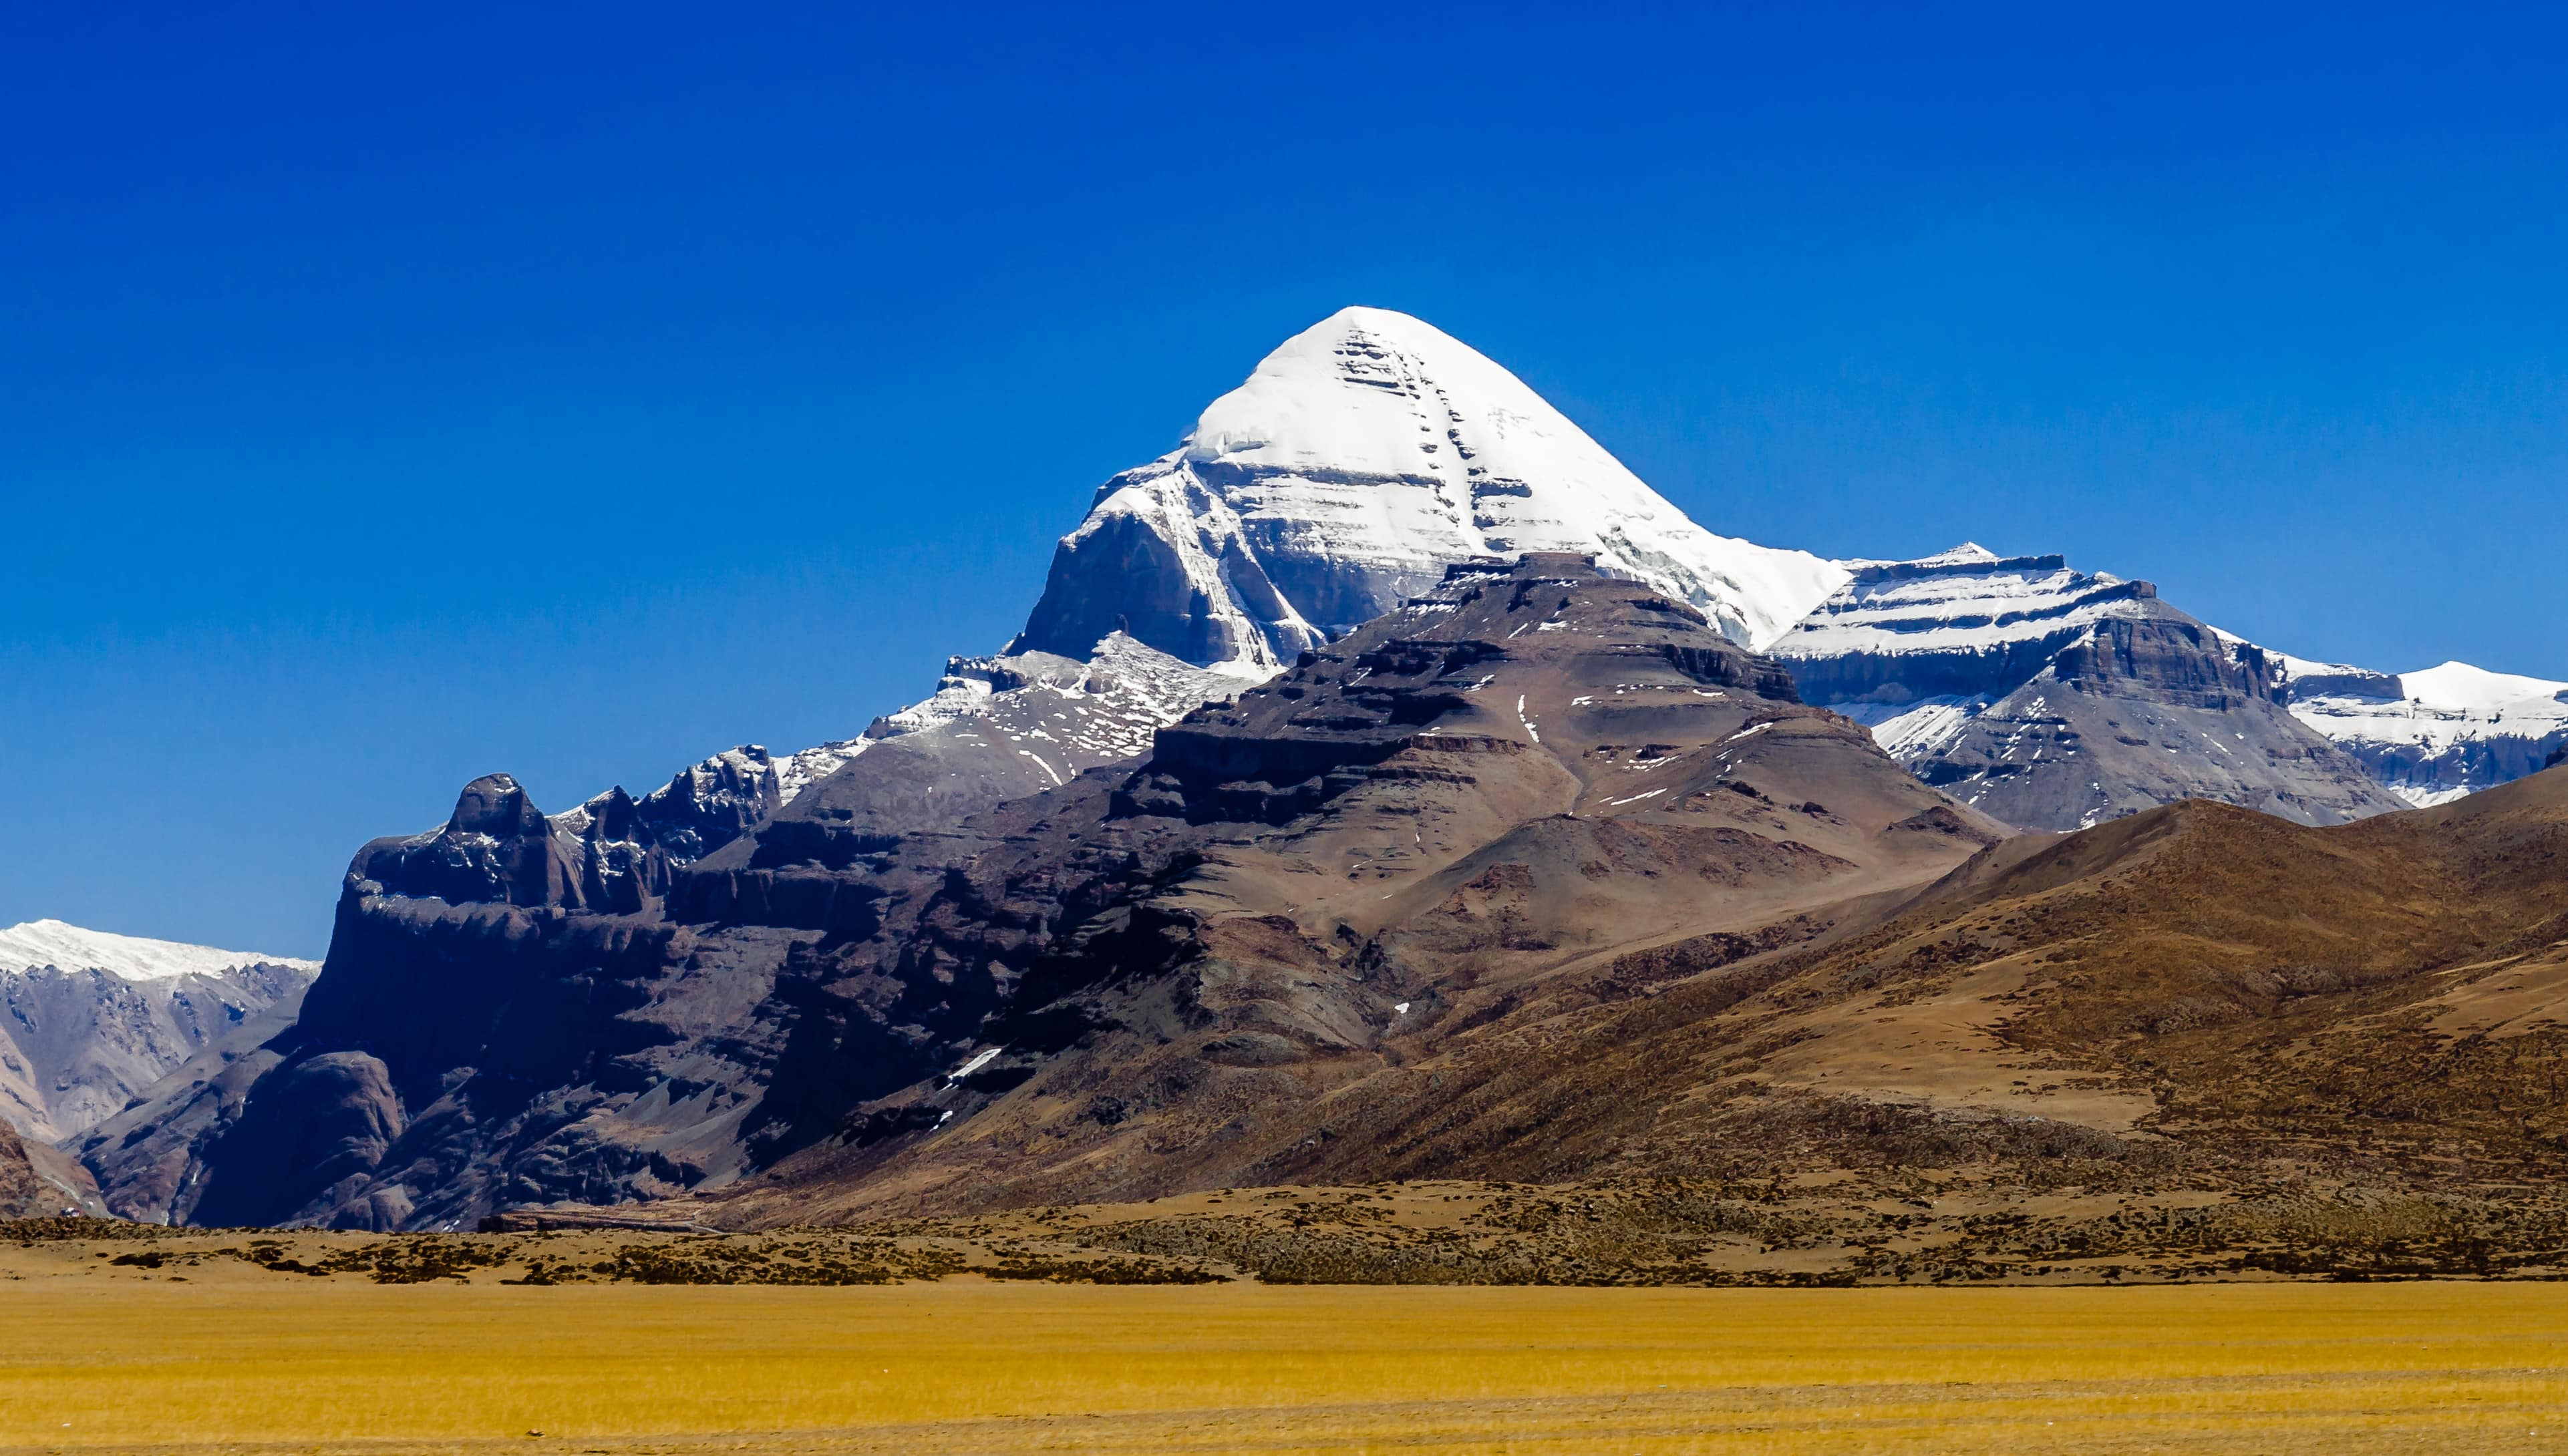 South face oif Mount Kailash in Tibet